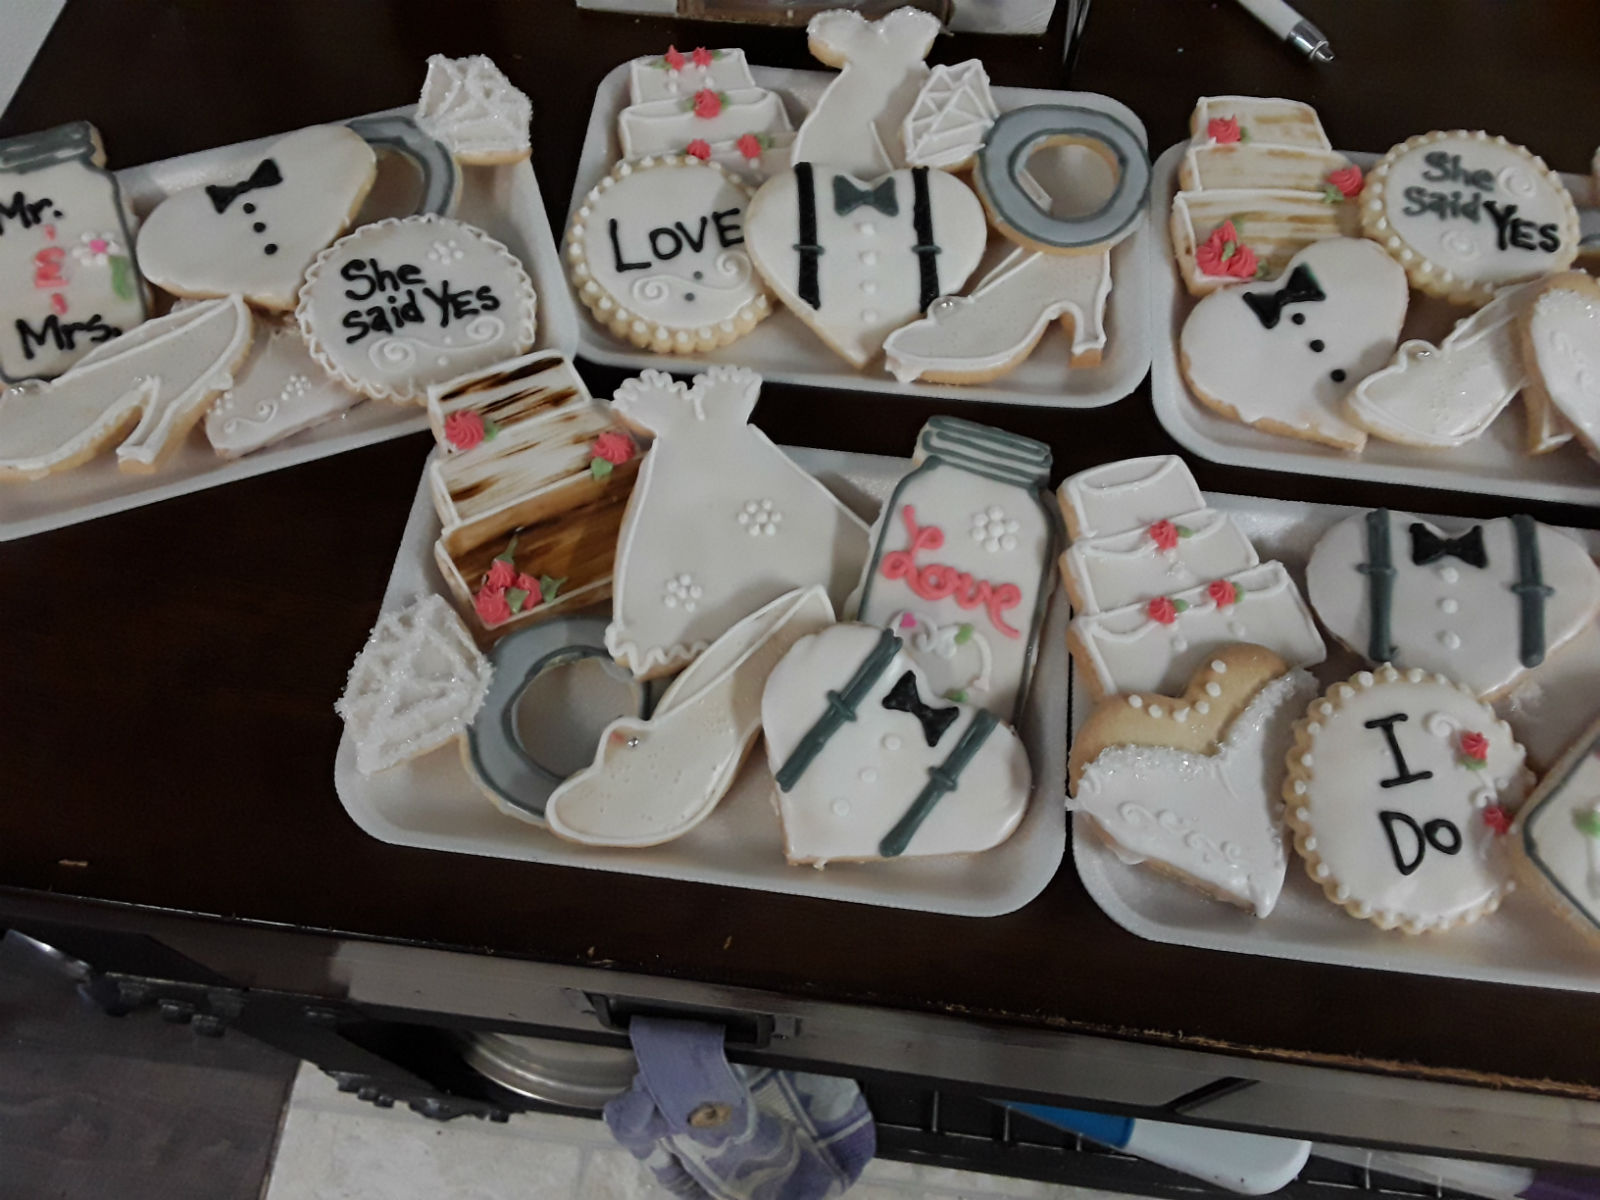 Masonjarthemeweddingcookies